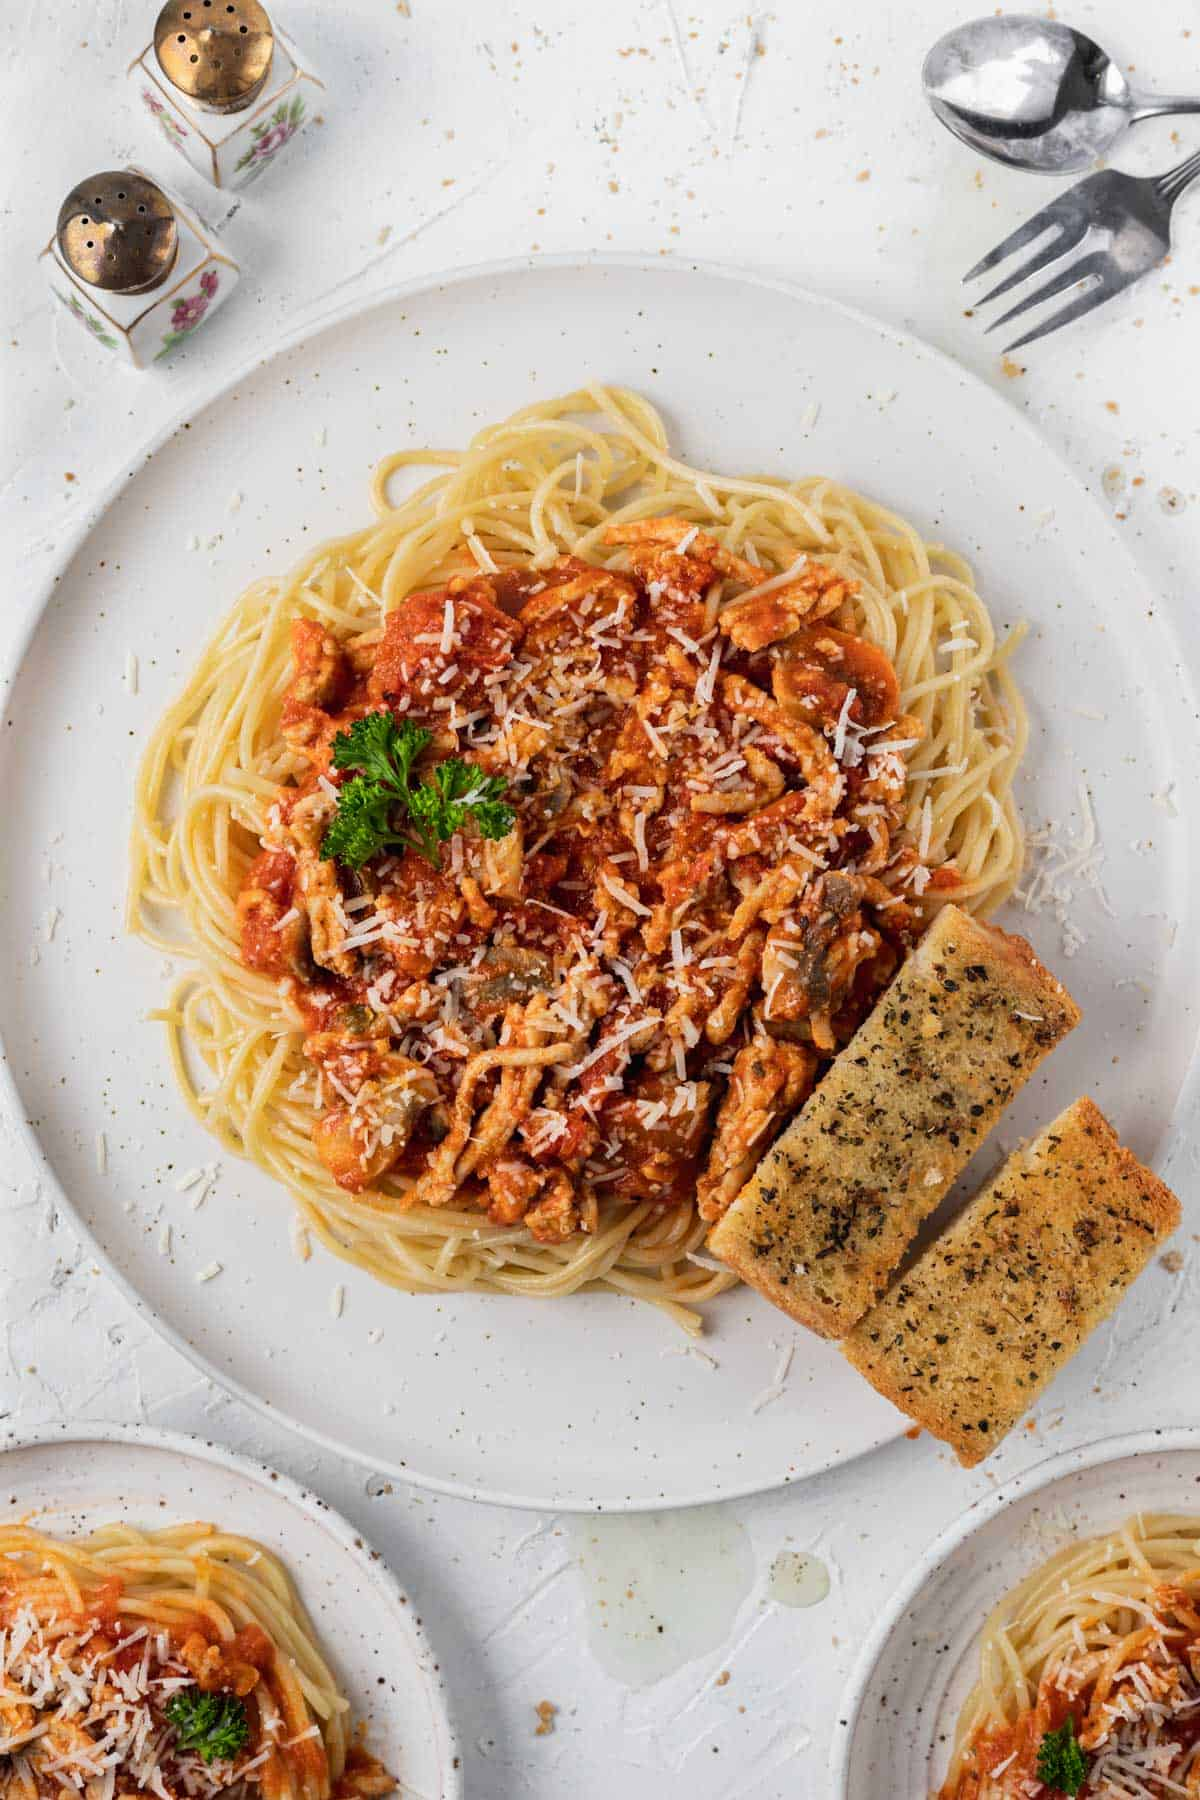 Quick and easy air fryer garlic bread served with a plate of spaghetti.